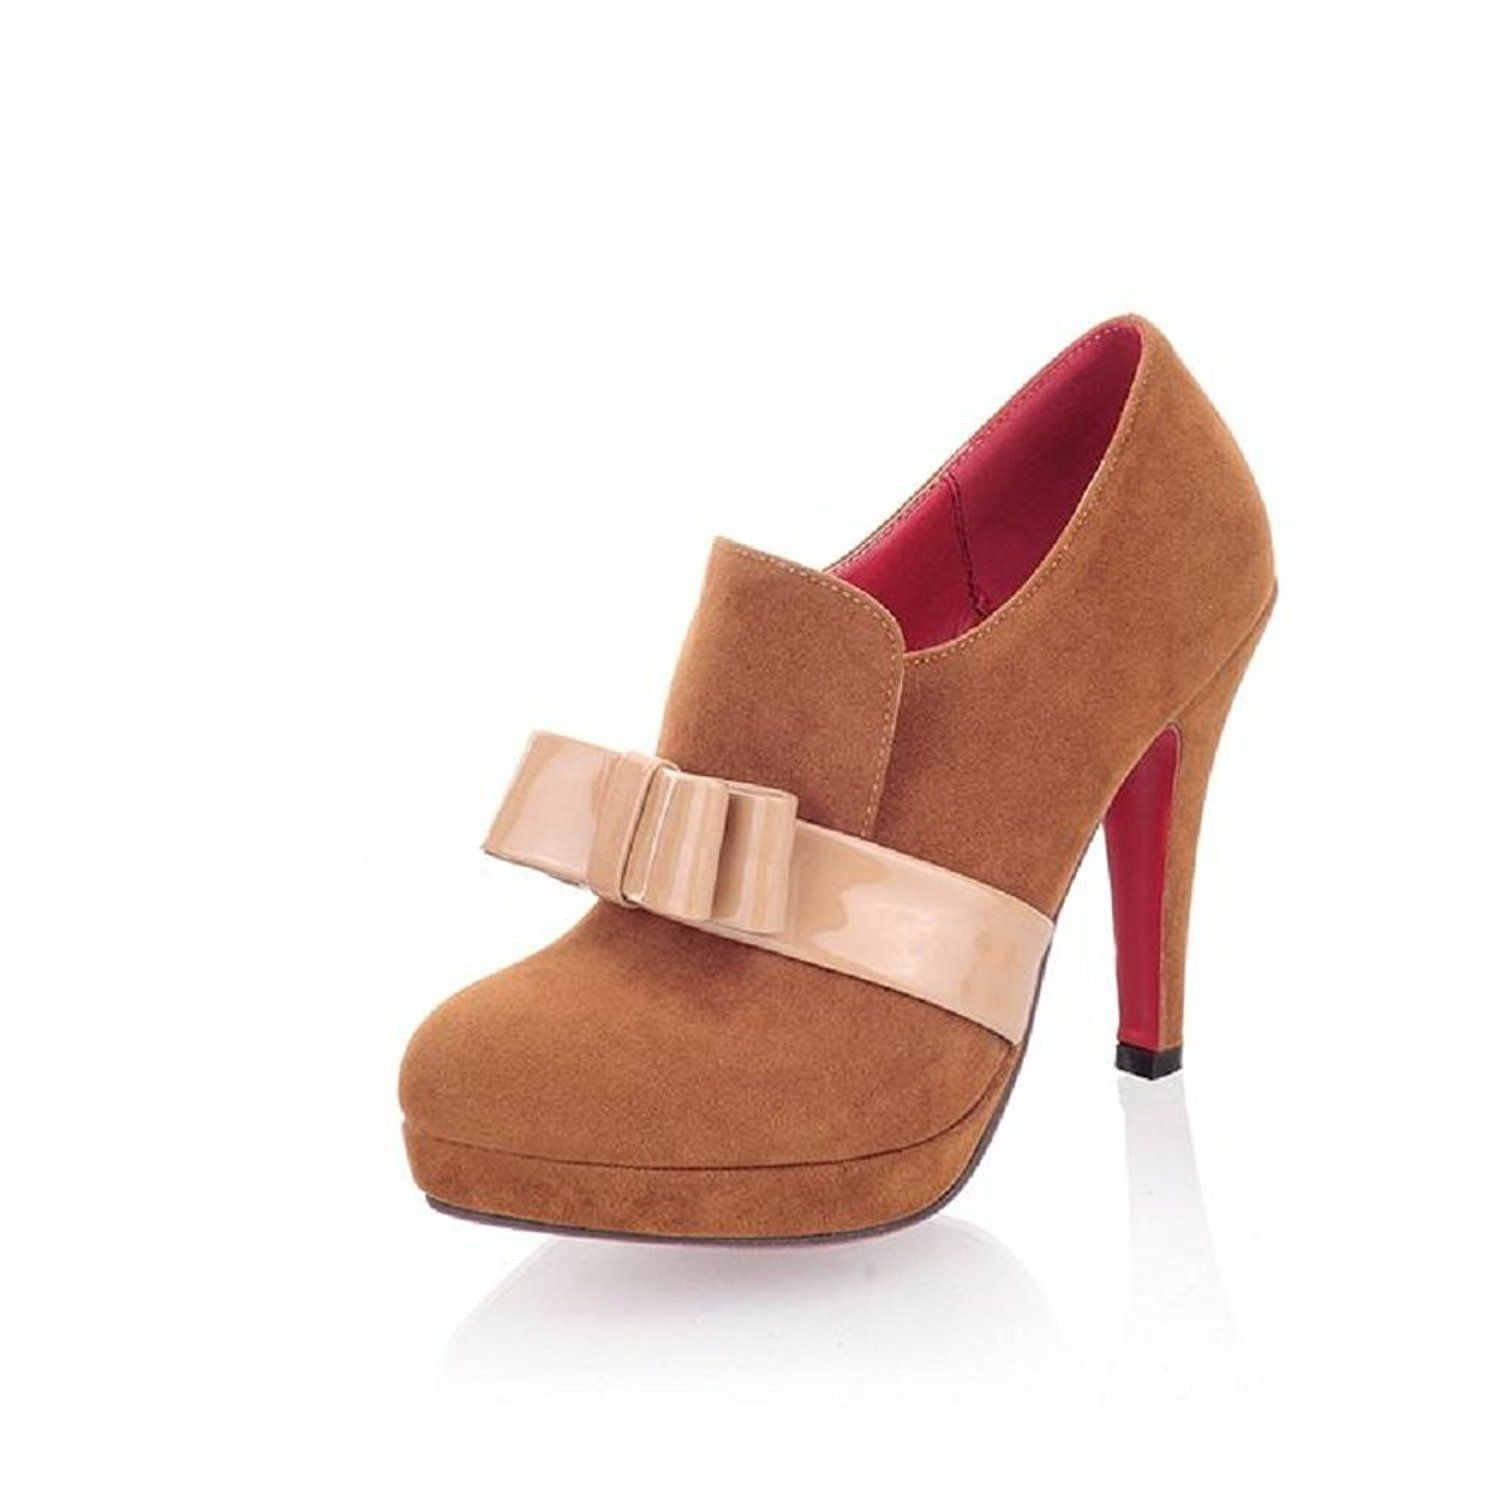 Women's Fashion Bows Platform High Heel Ankle Boots